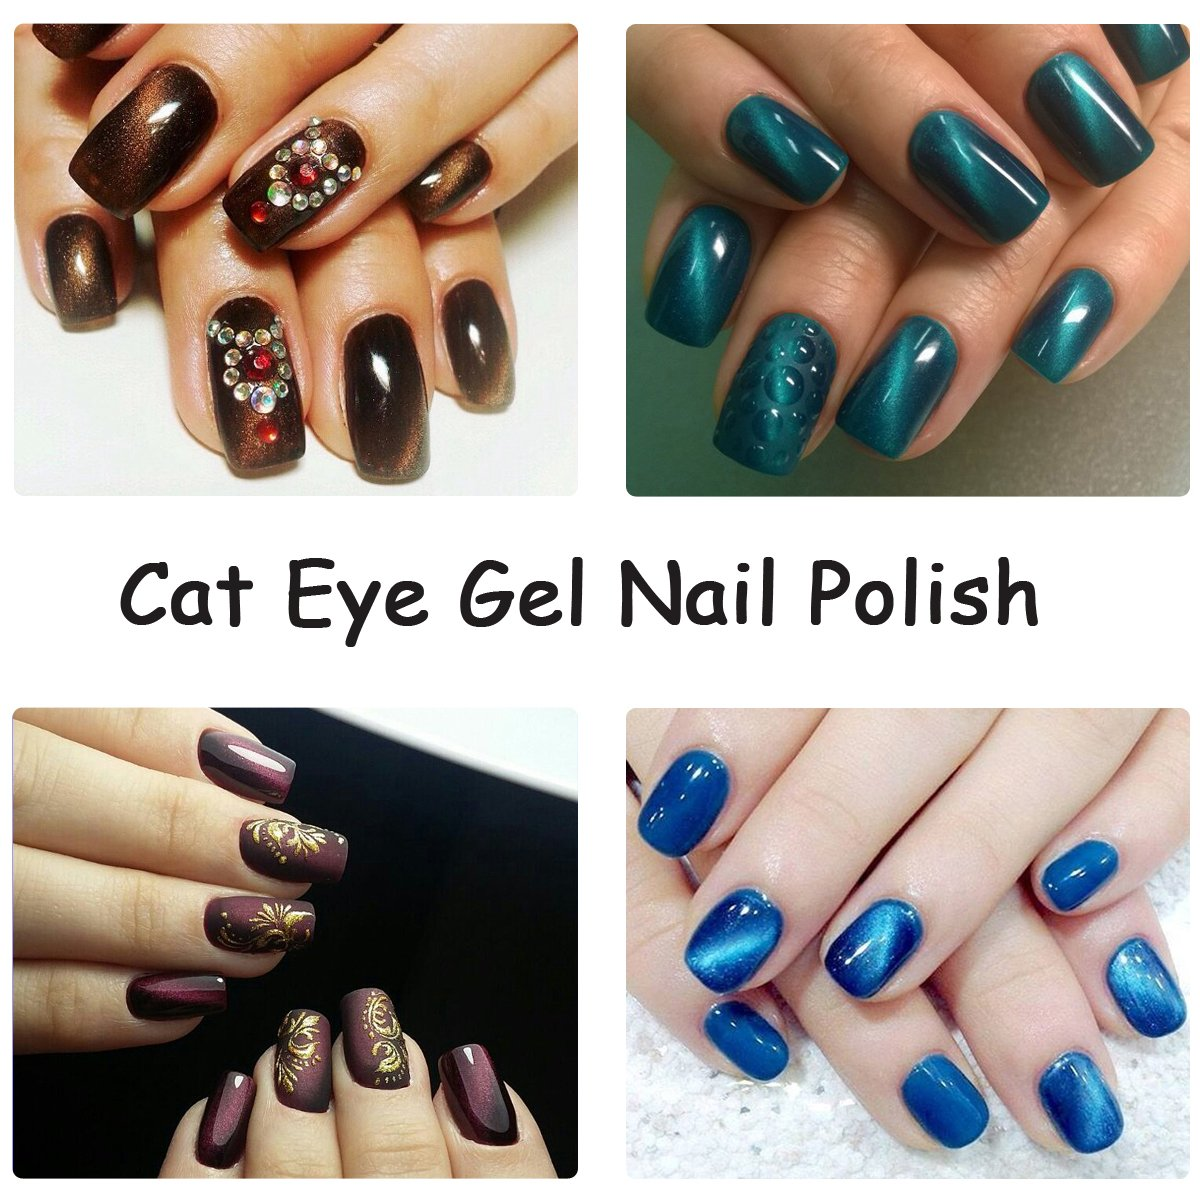 Amazon.com : Perfect Summer Cat Eye Gel Nail Polish - UV/LED Soak ...